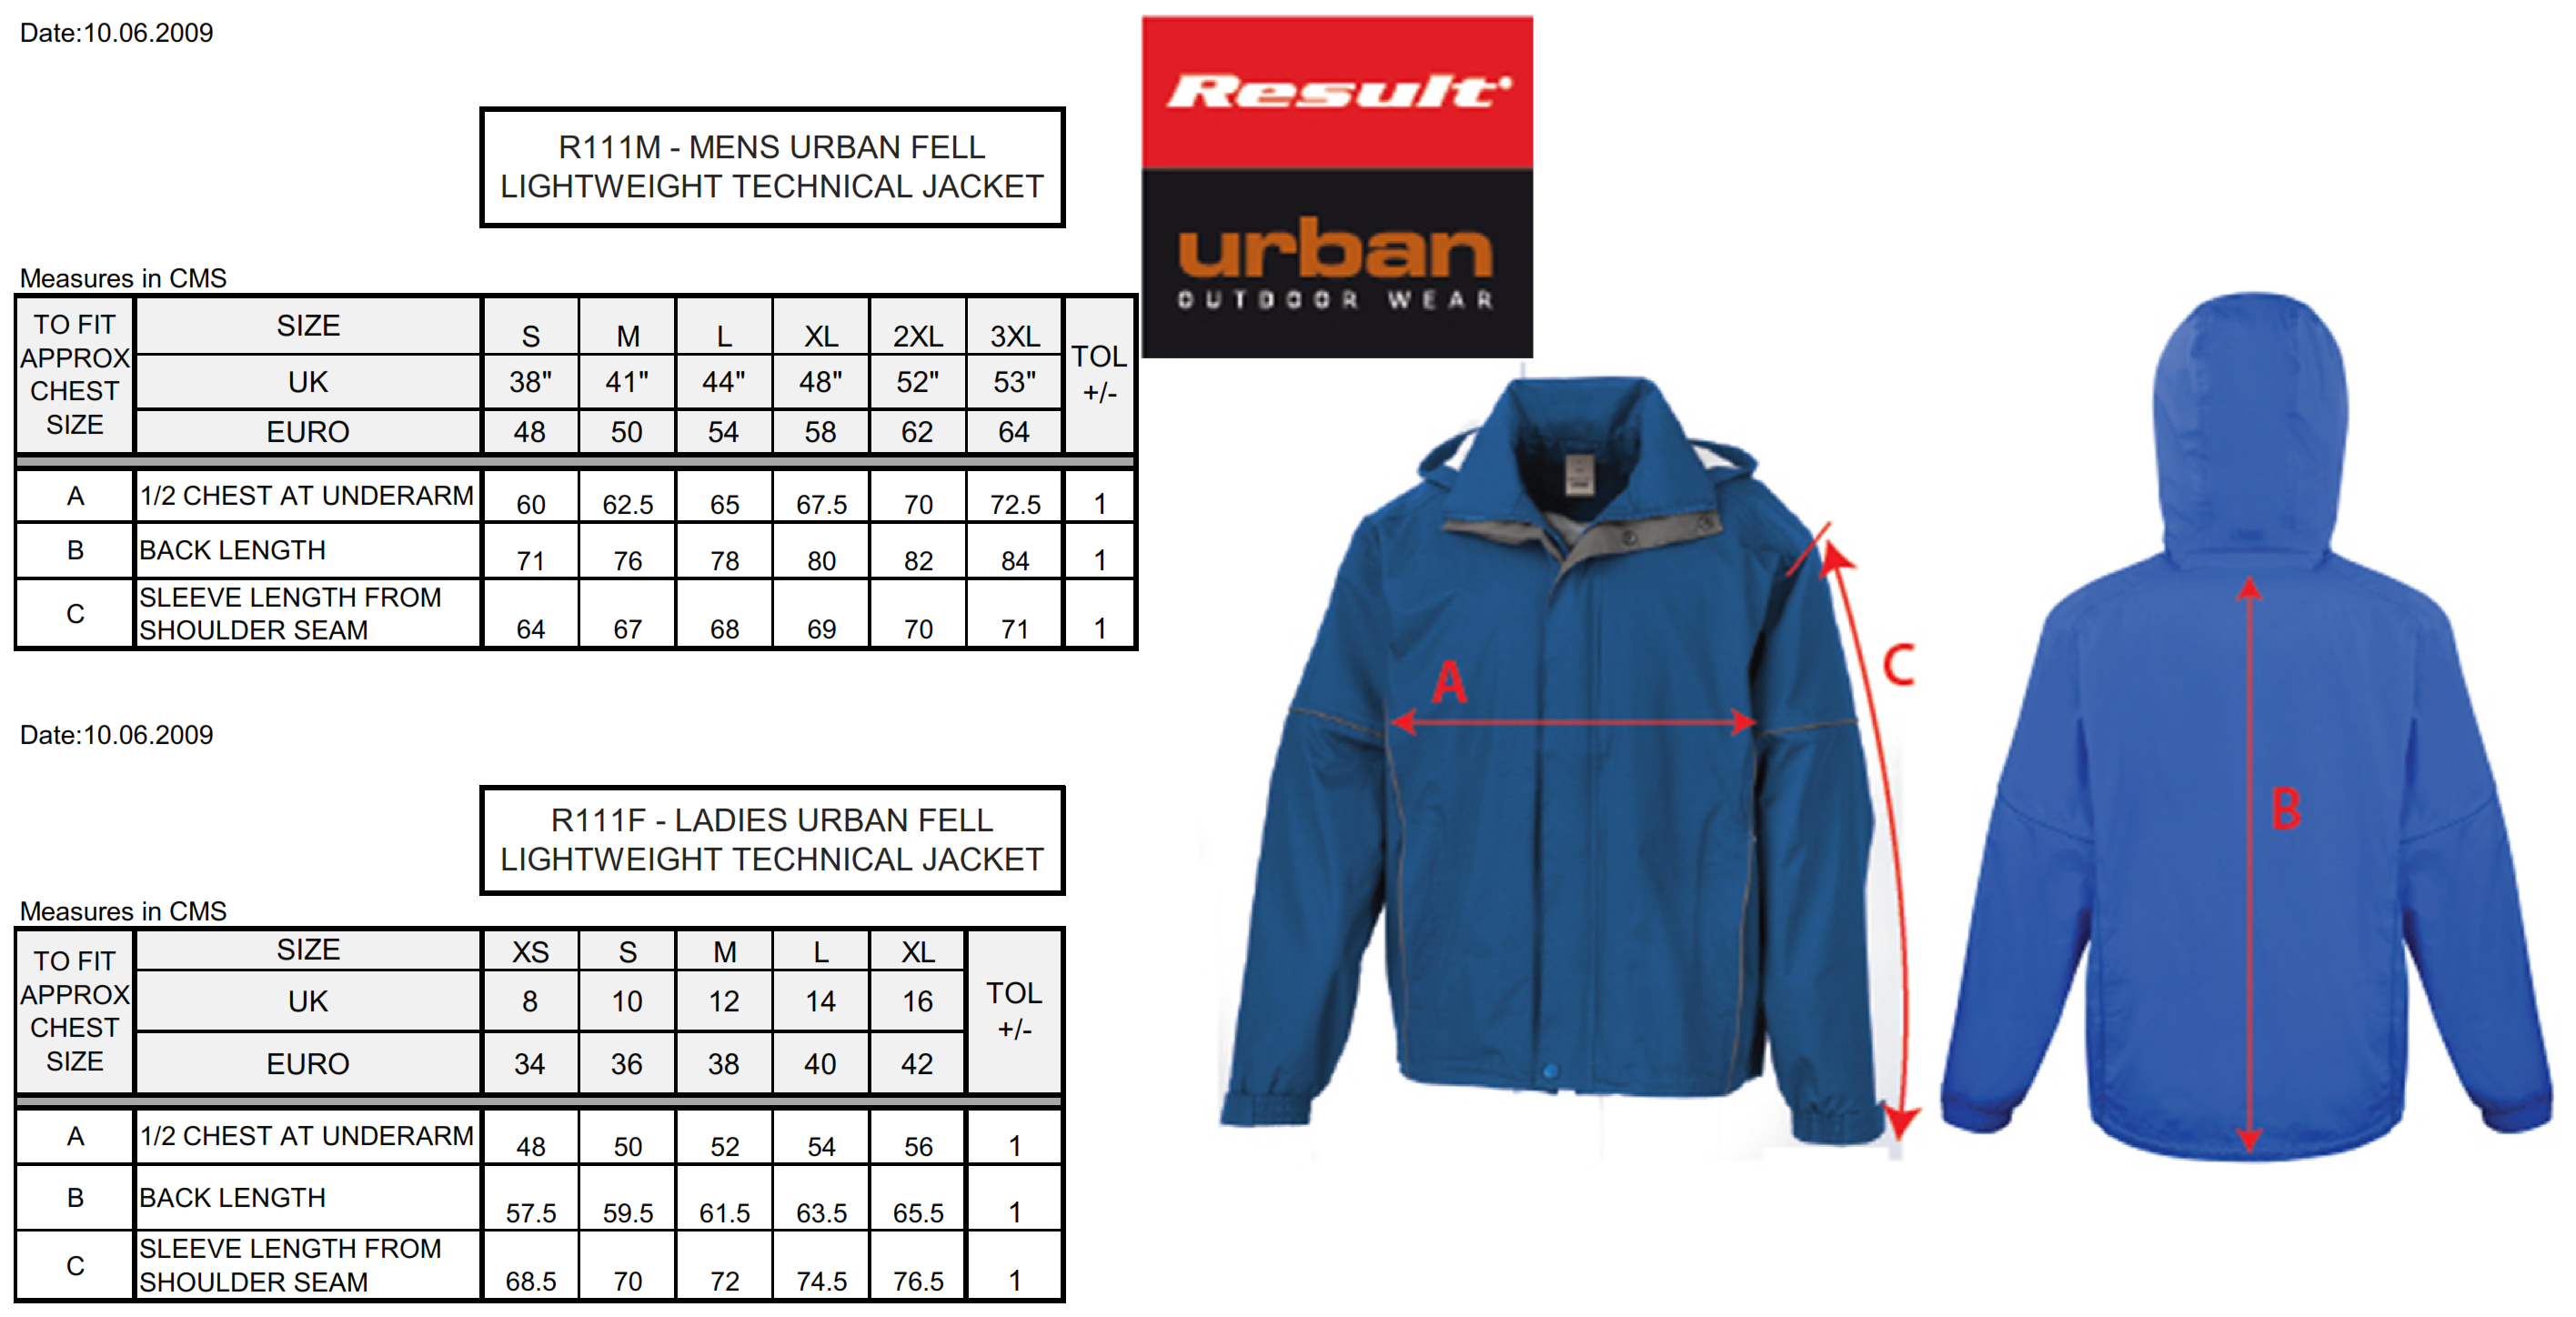 Result: Urban Fell Lightweight Jacket R111M